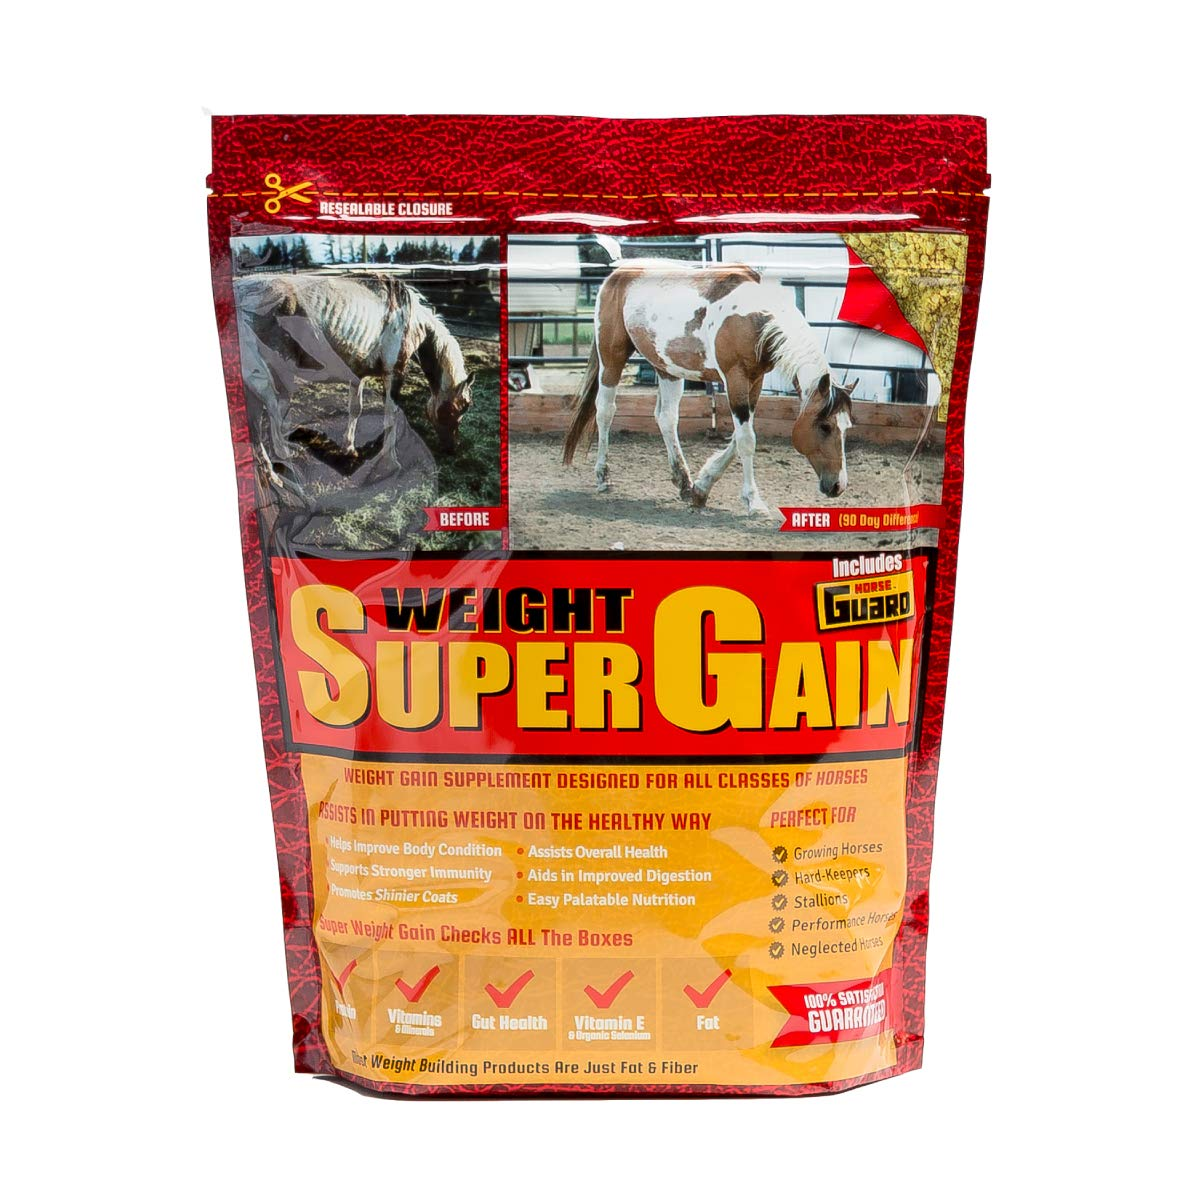 Horse Guard Super Weight Gain Equine Vitamin Mineral, Probiotic & Weight Gain Supplement, 10 lb by Horse Guard